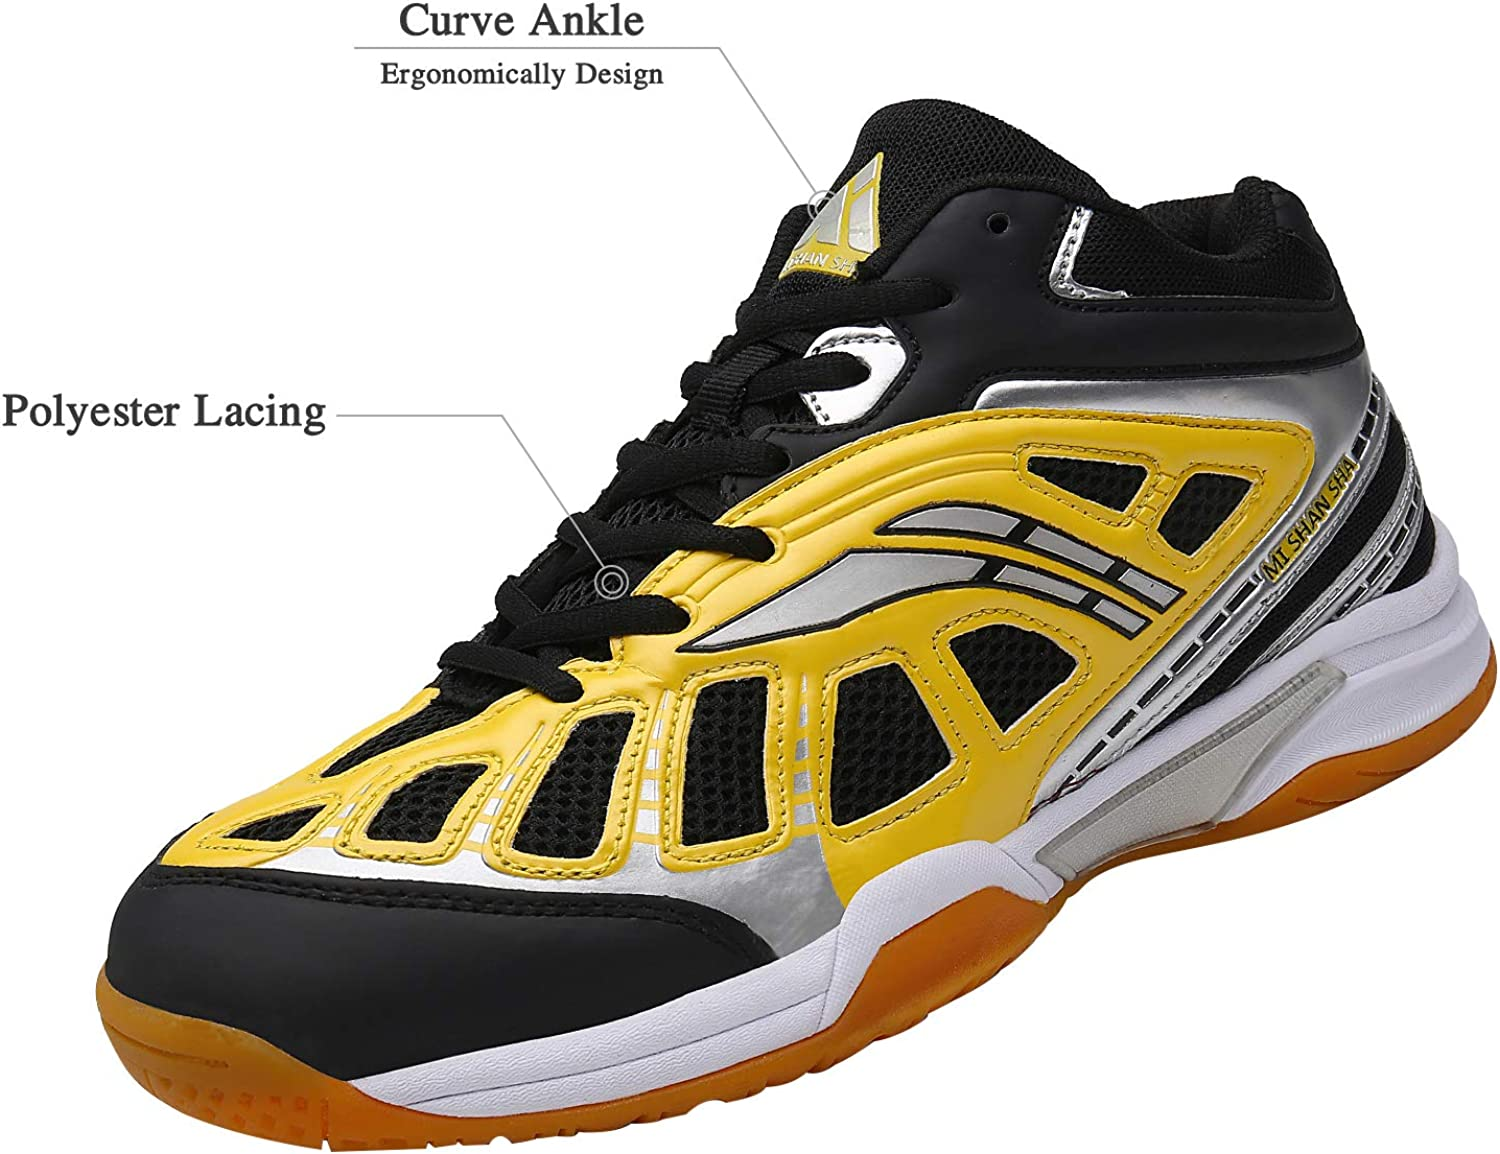 Mishansha Mens Court Squash Badminton Tennis Shoes Indoor Outdoor Non Slip